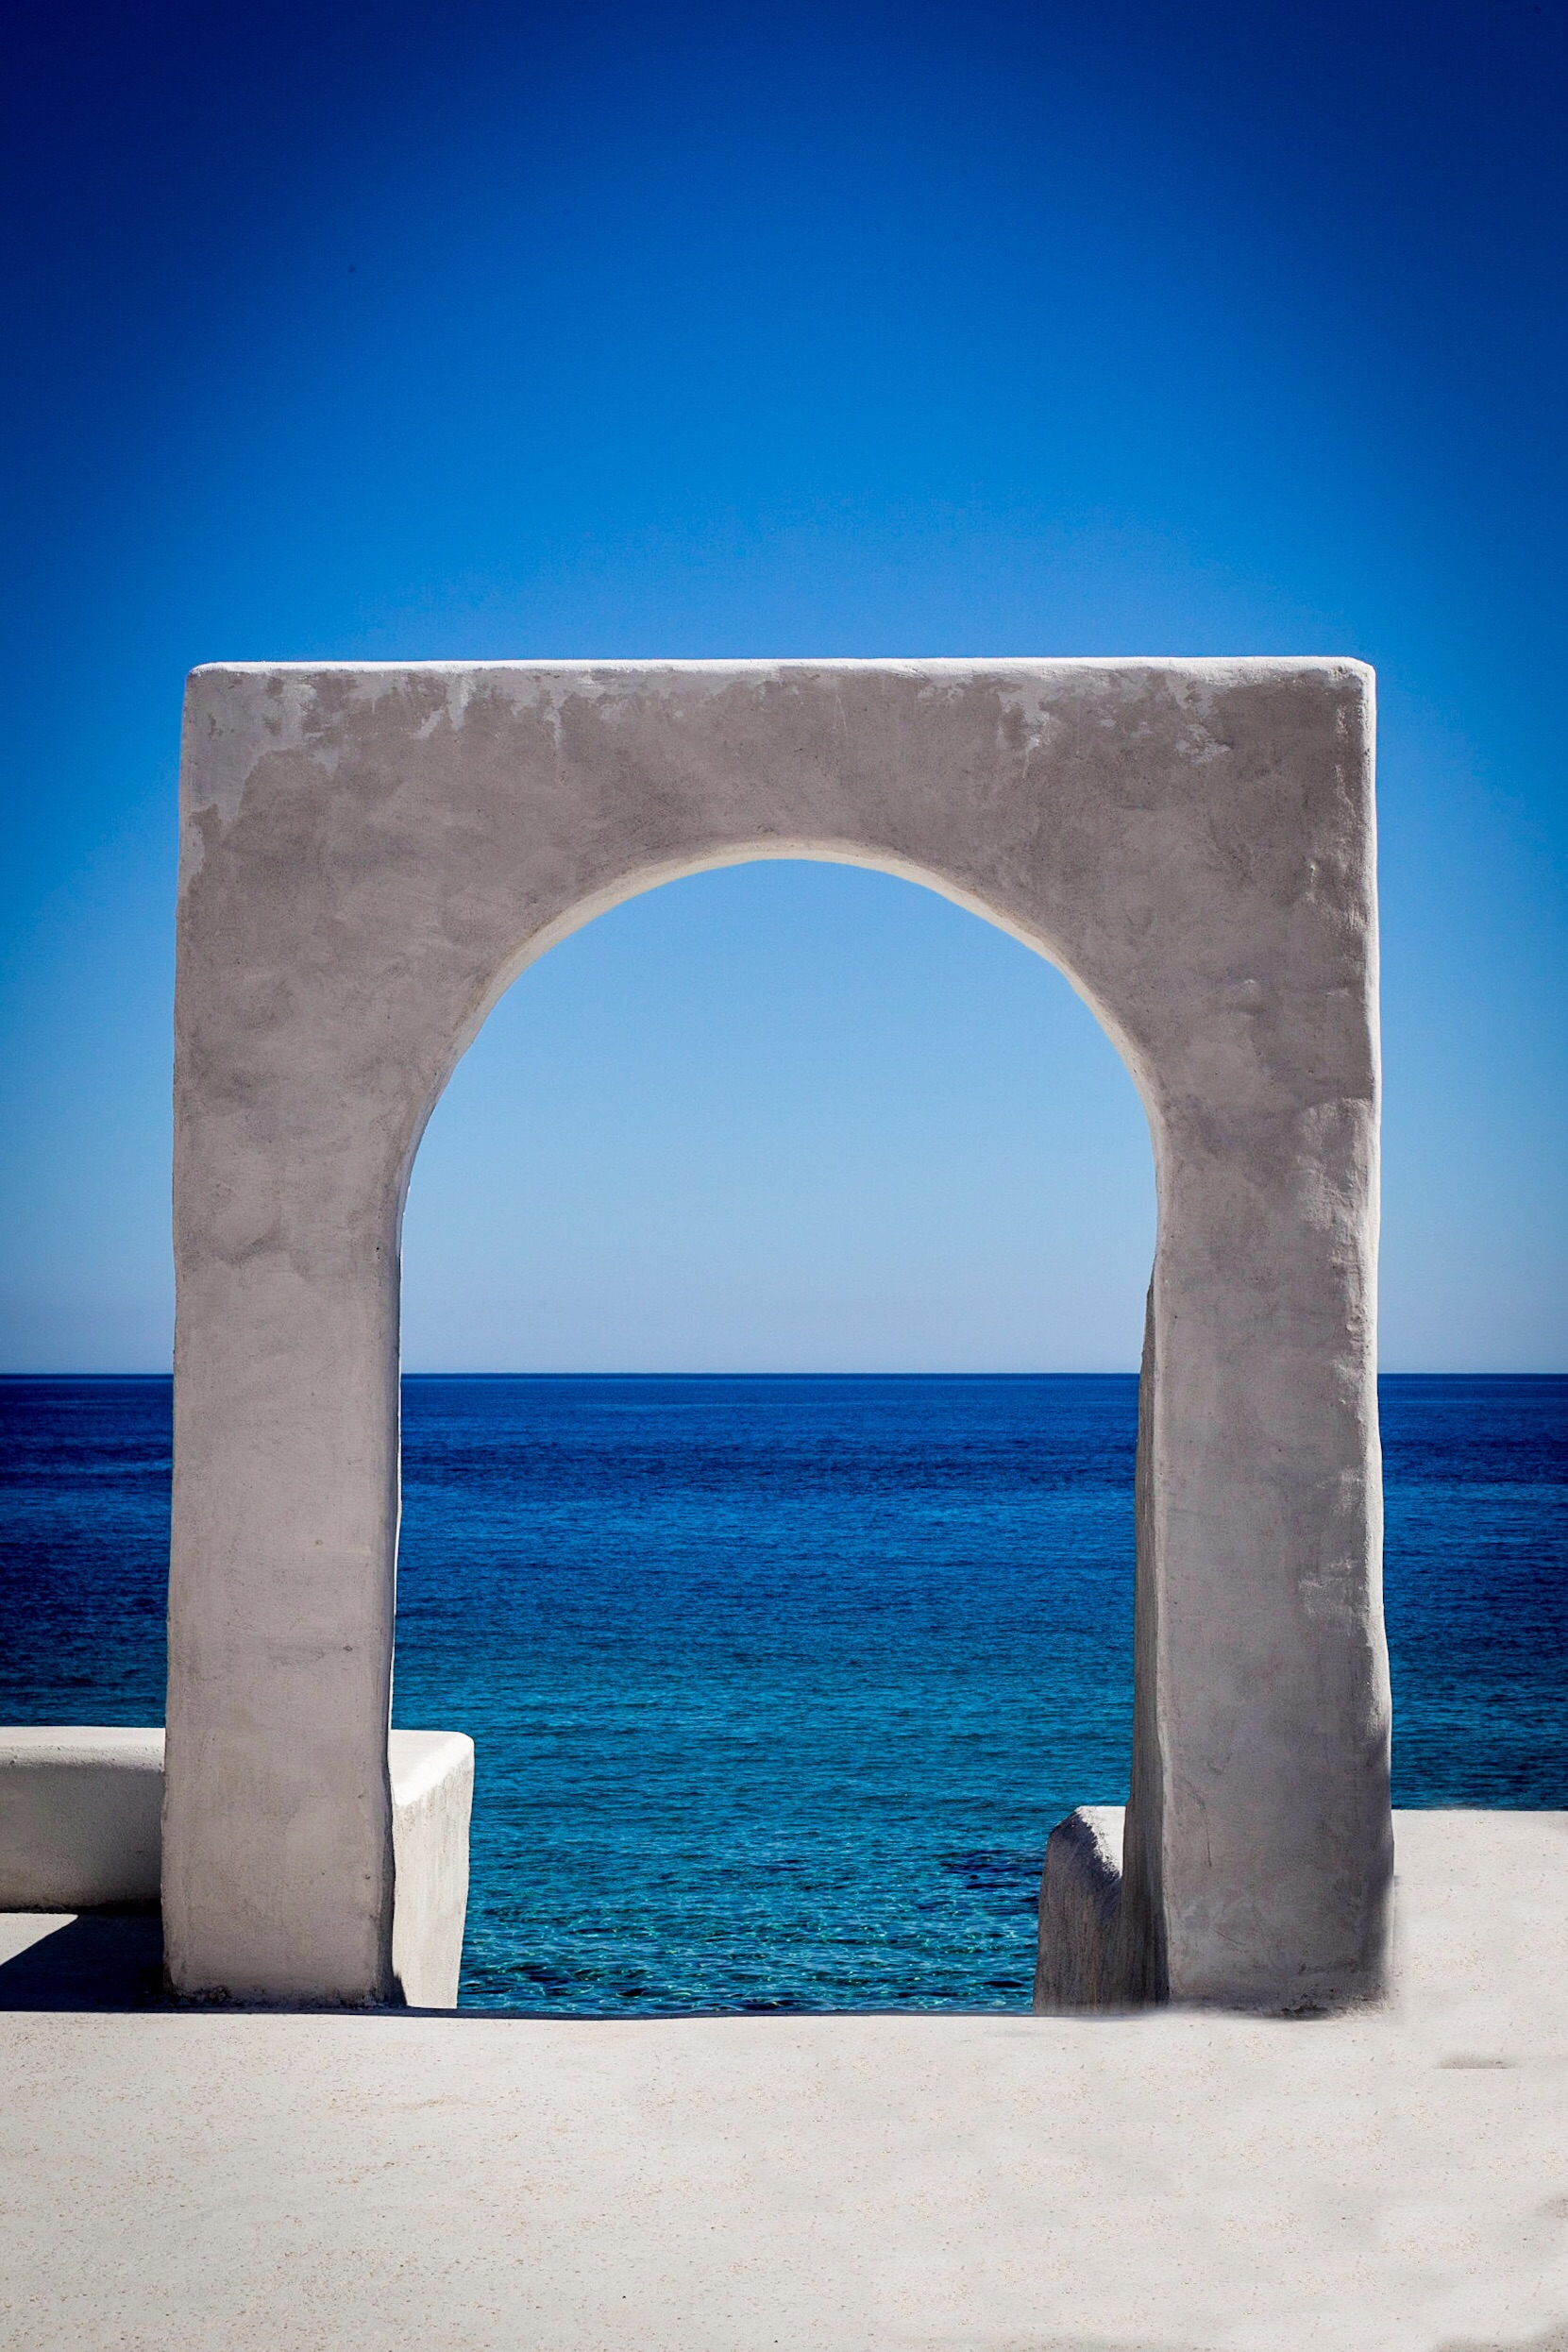 Architecture photography in Greece